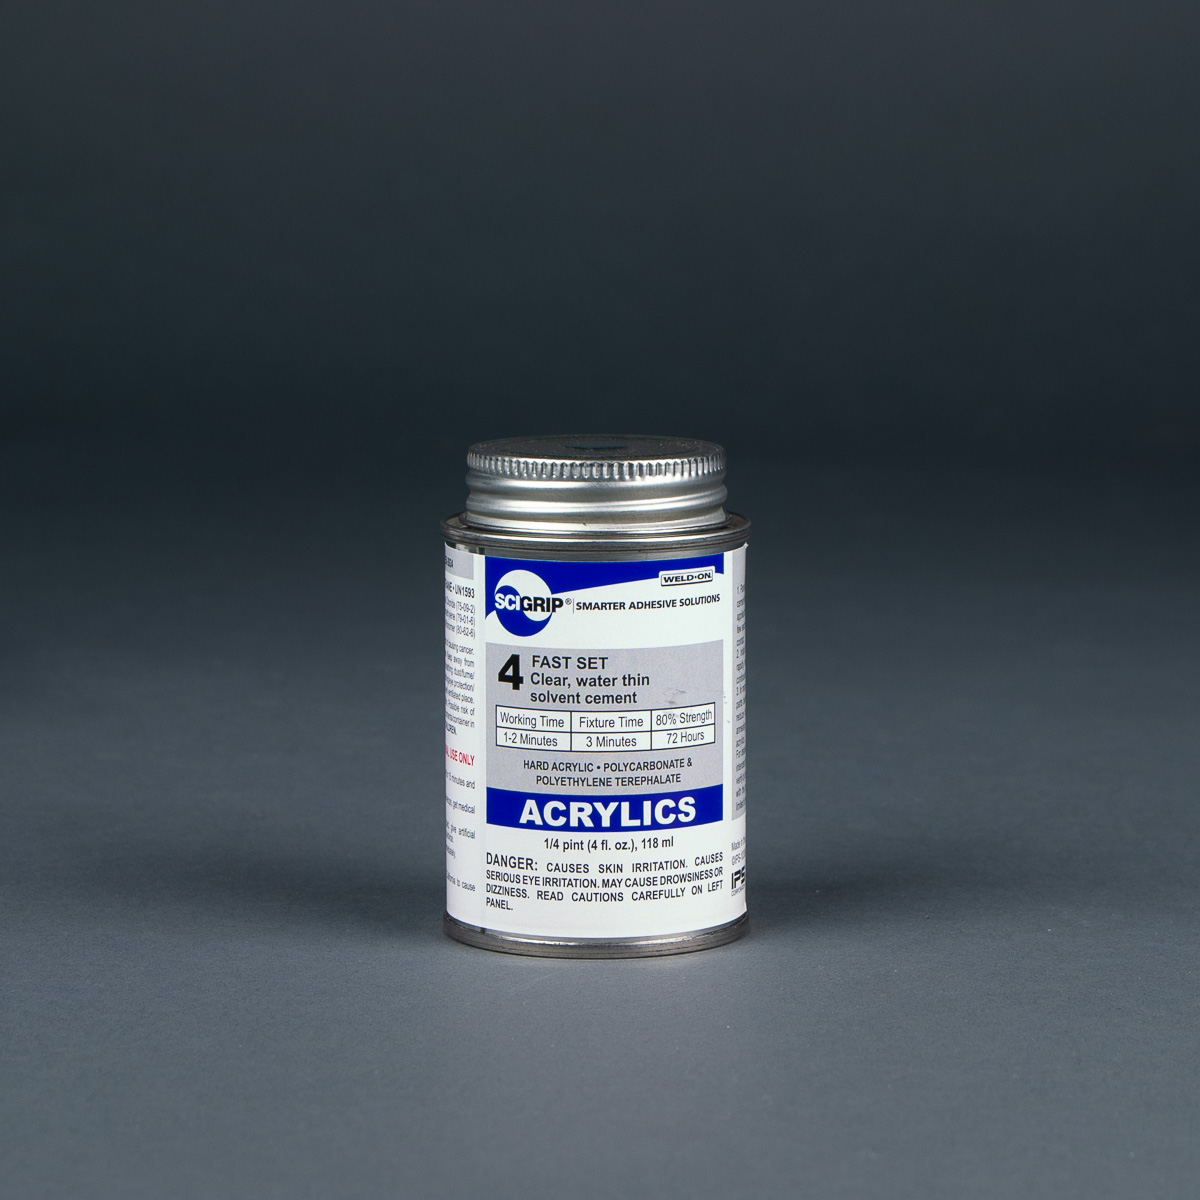 SCIGRIP Weld-On 4 Acrylic Solvent Cement 1/4 pint